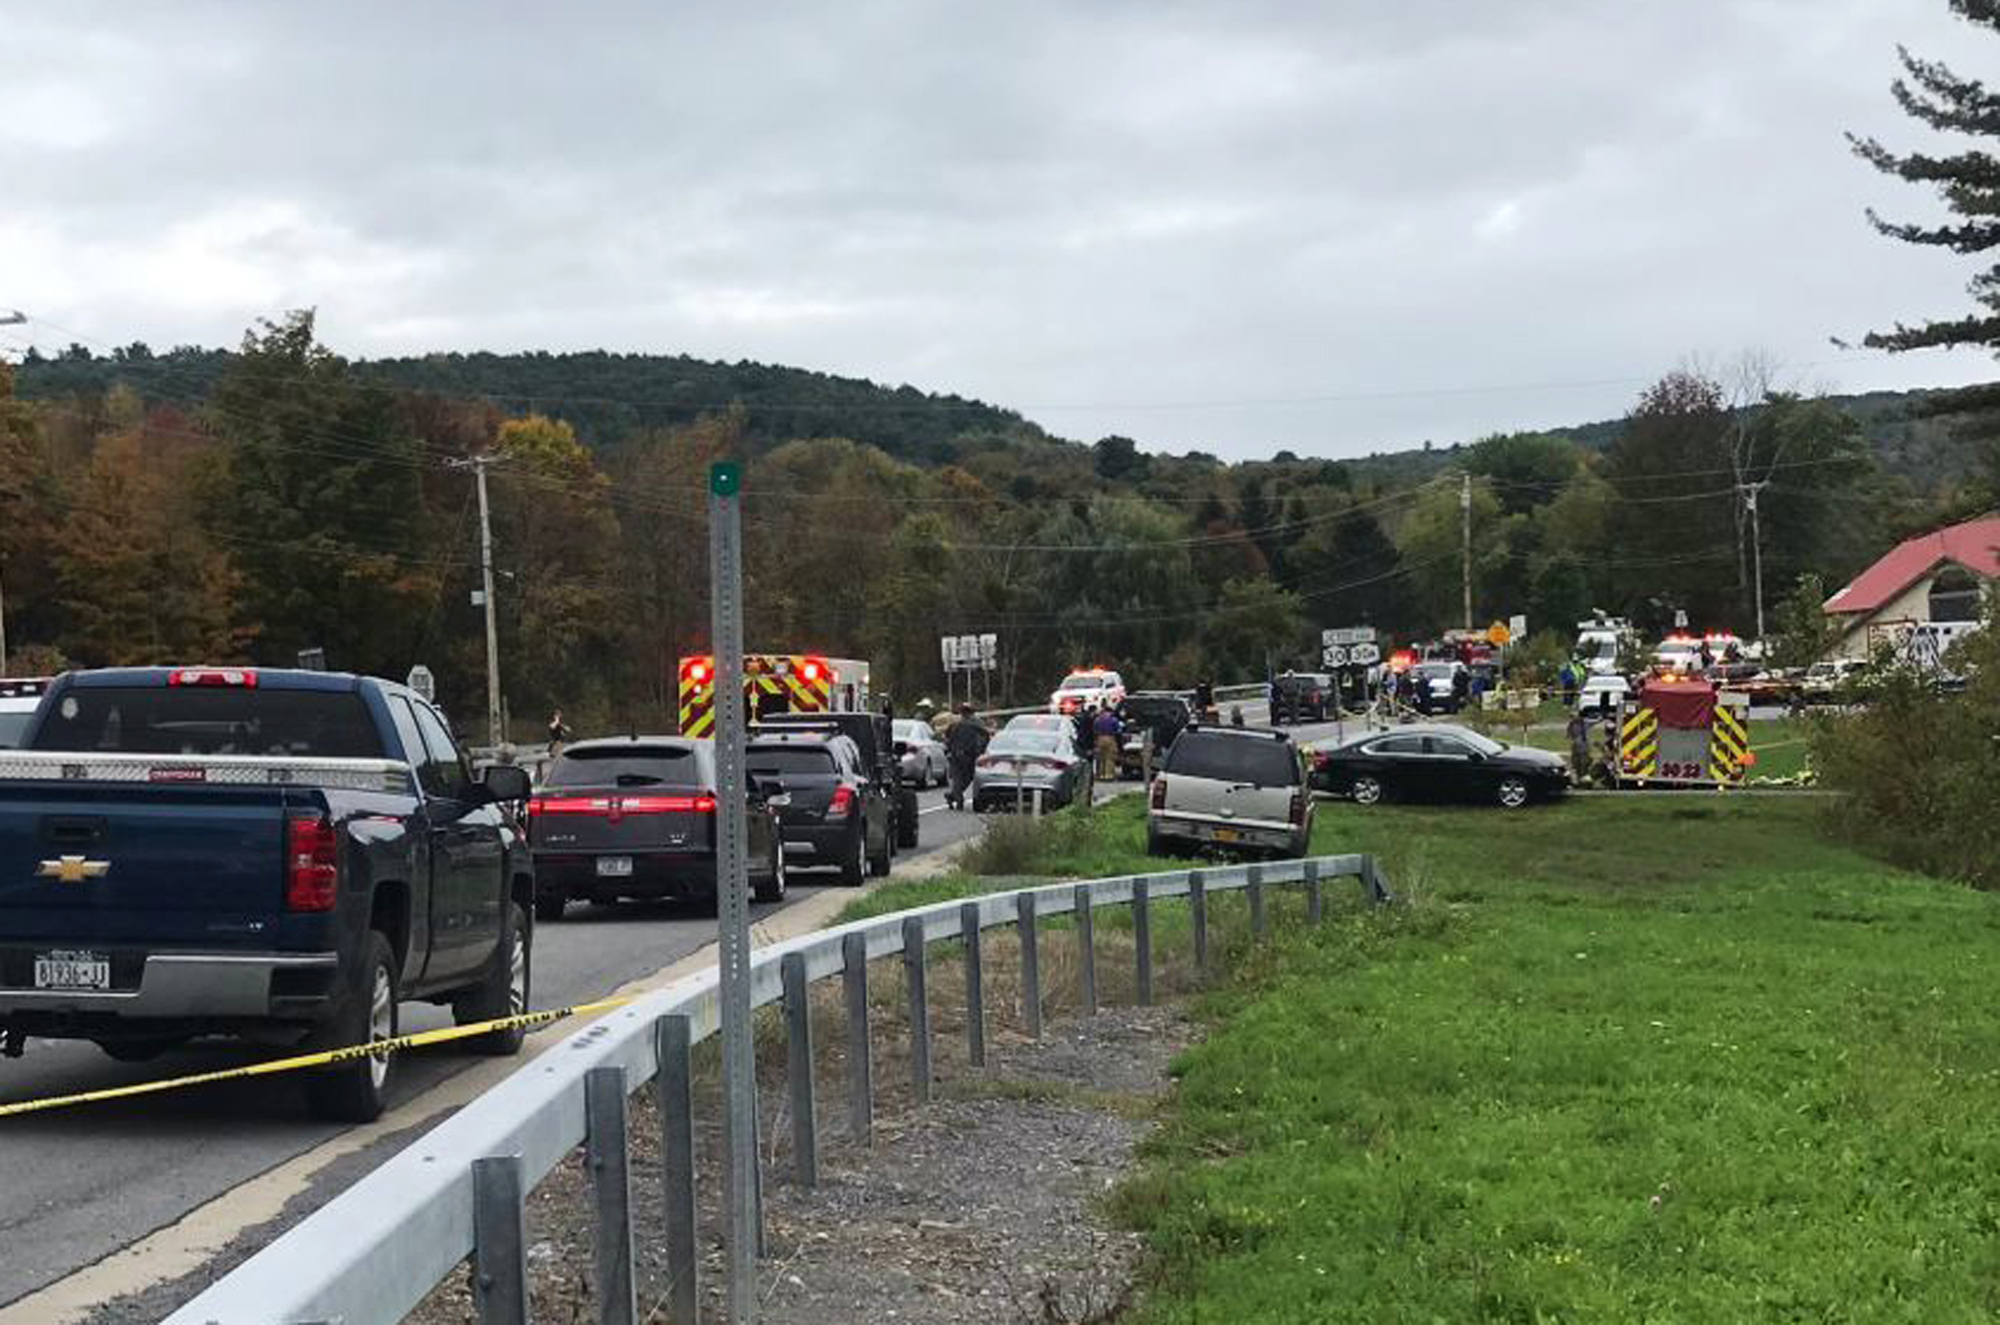 New York limousine crash: At least 20 killed in accident in